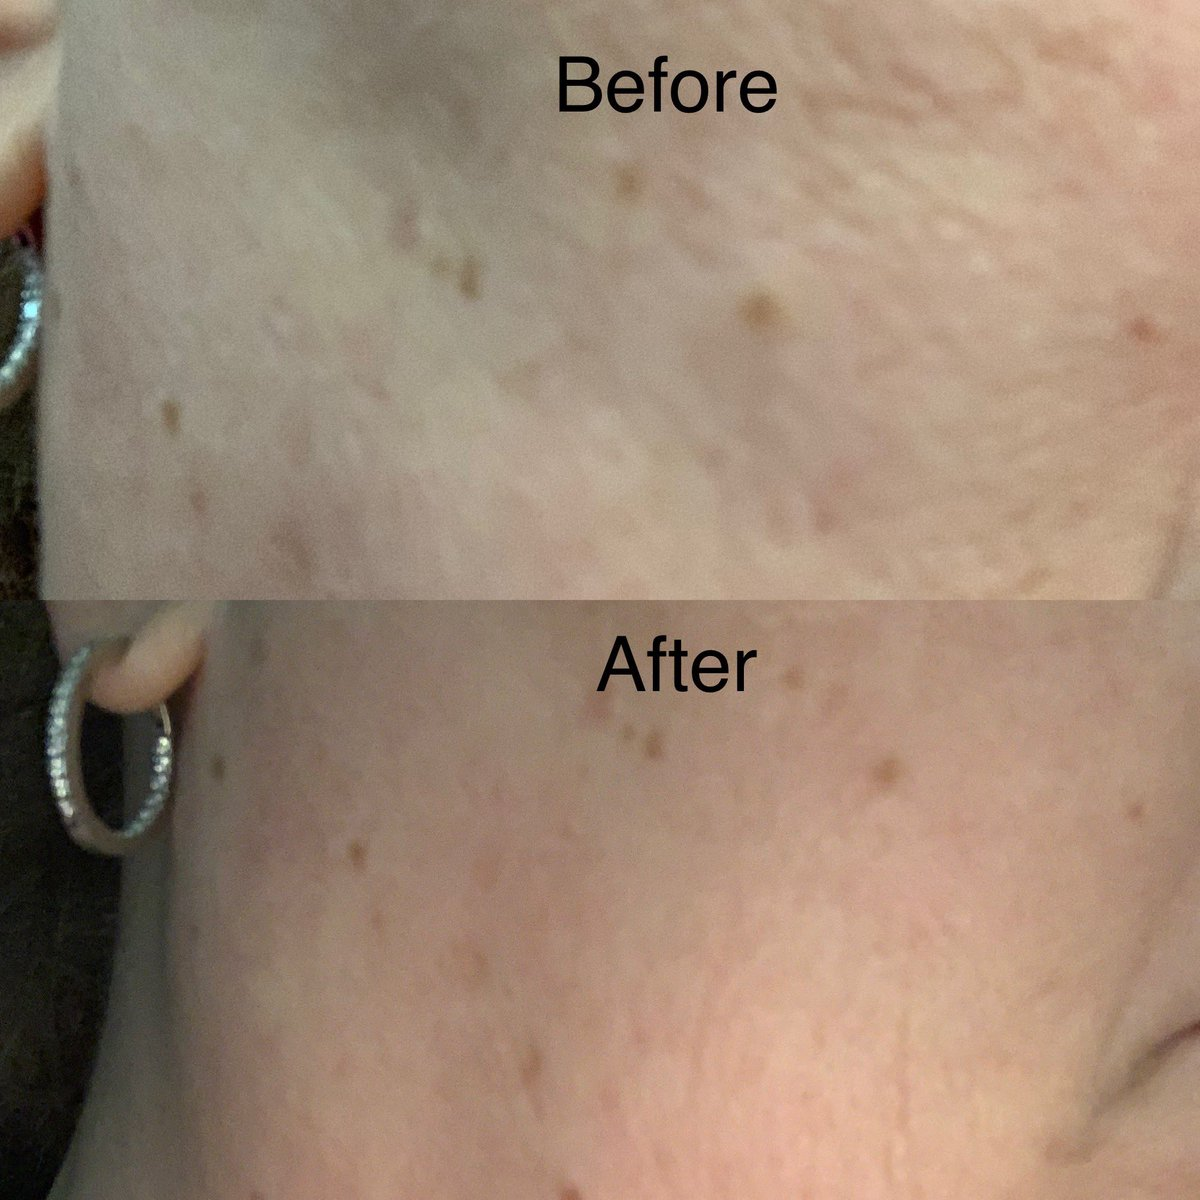 Before & after pictures of applying Pure Cannaceutical Hemp Serum to my 53 yr old face. Stays soft & smooth all day long. $39 a bottle Did you know your skin absorbs the CBD?  Come try it! #wrinkles #dryskin #finelines #moisturizer #purecannaceutical @miragespa.stlouis.hottubs https://t.co/kdV74F9dIM